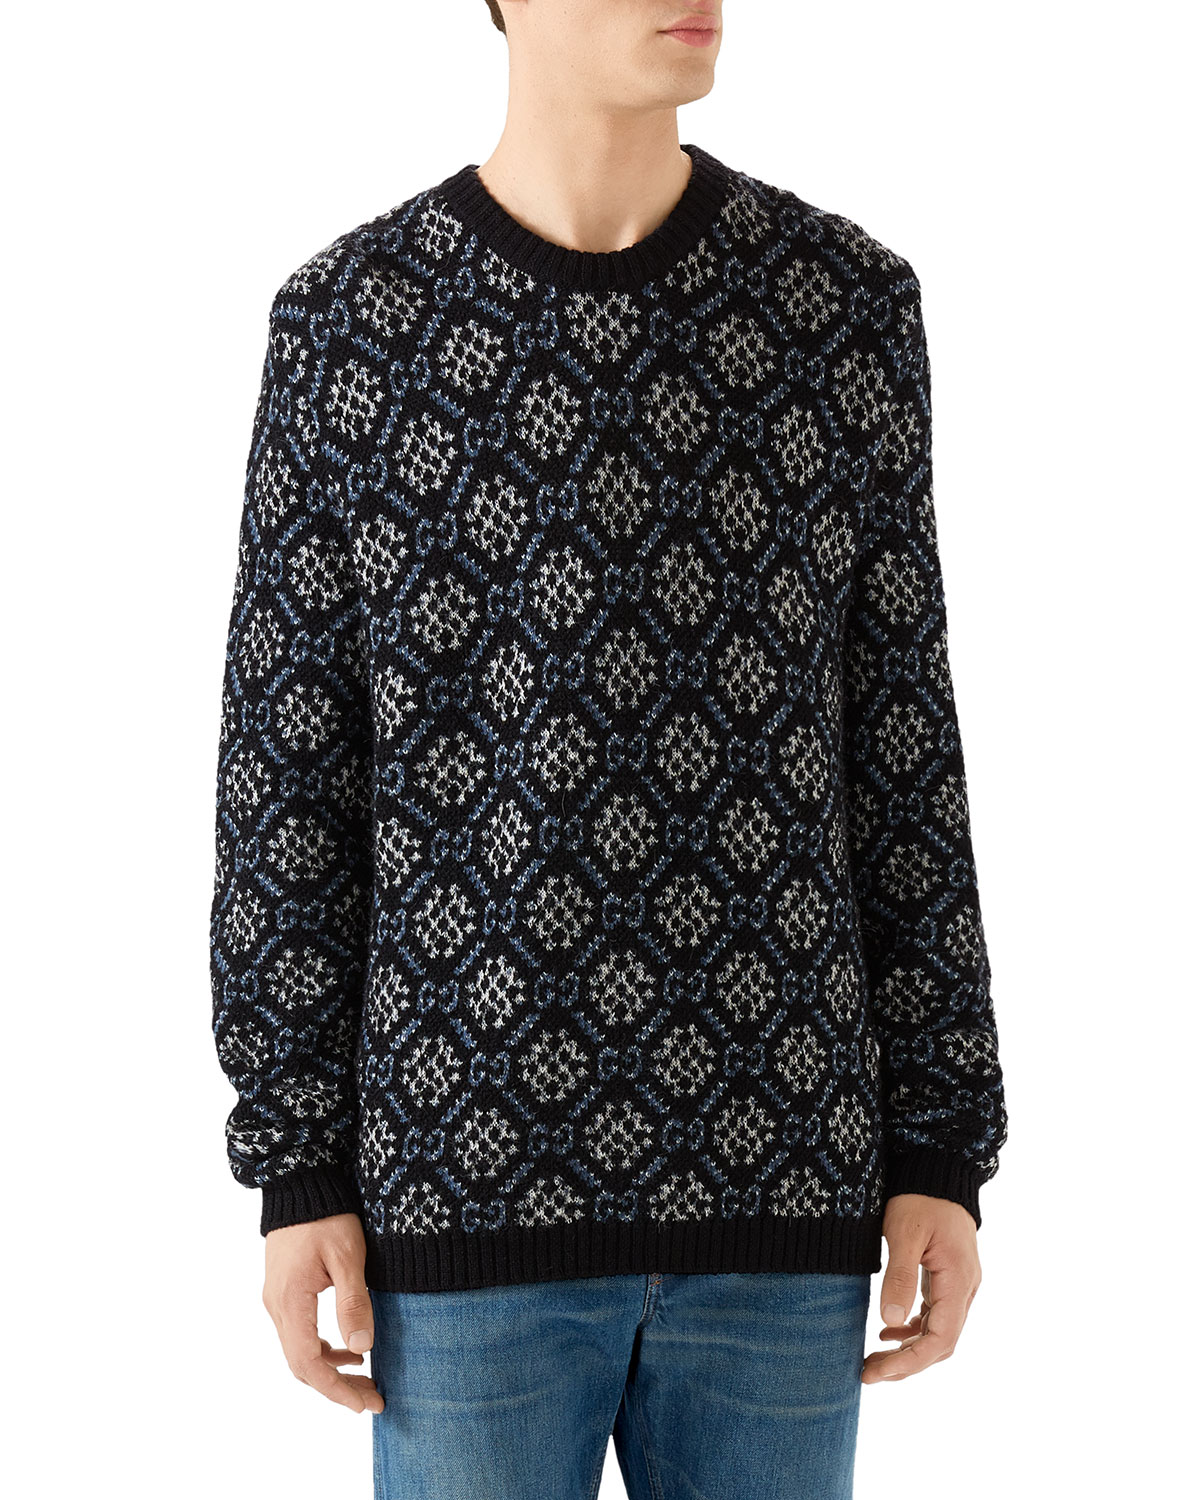 Men's Graphic Pattern Wool-Blend Sweater